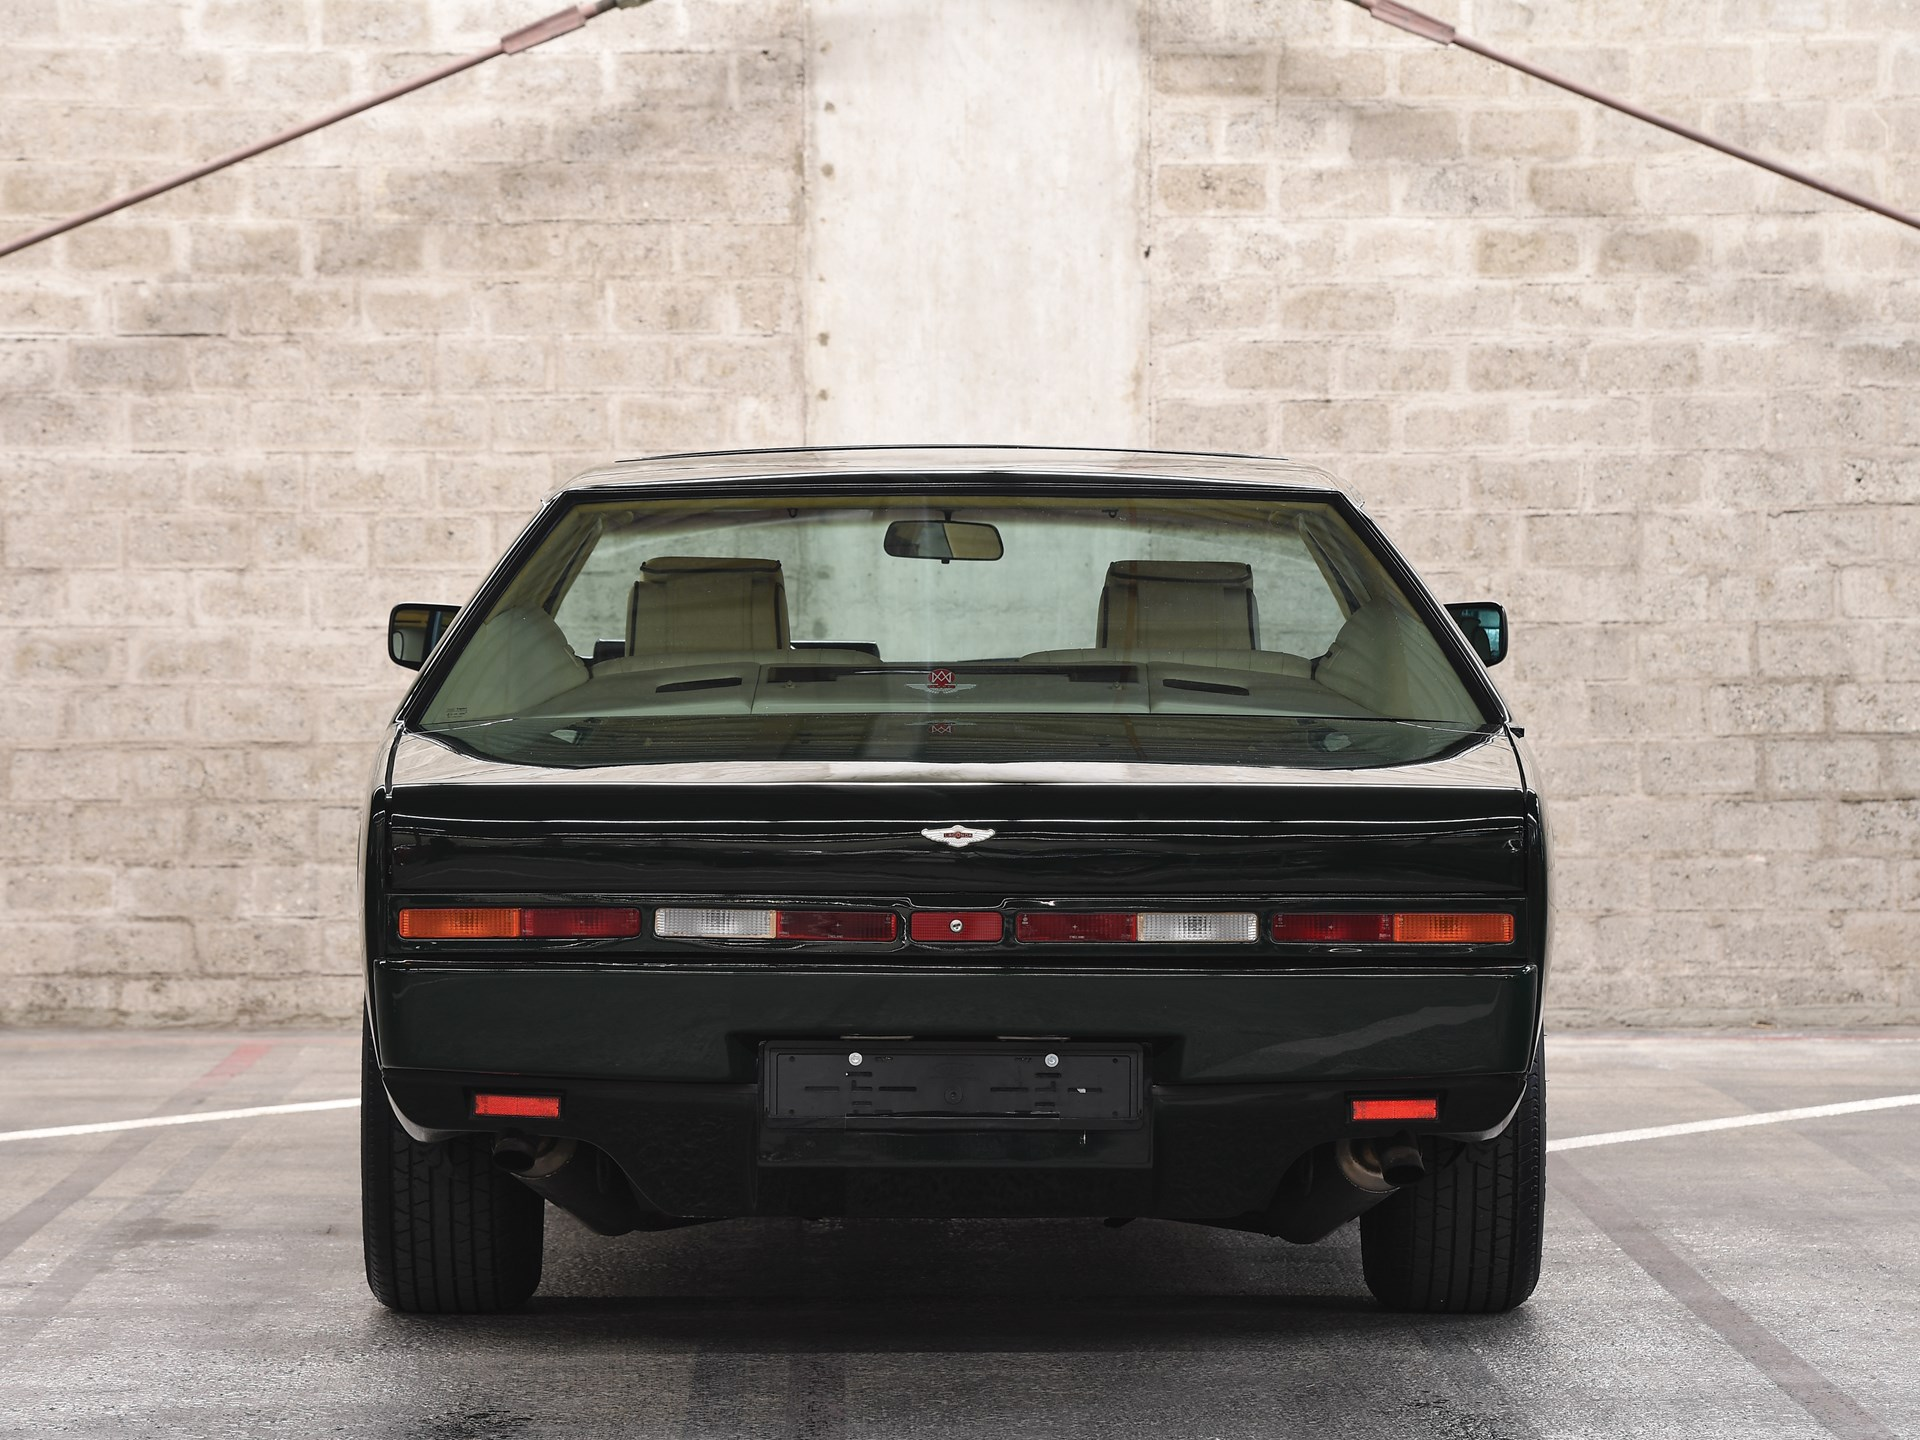 1989 Aston Martin Lagonda Series 4 rear end